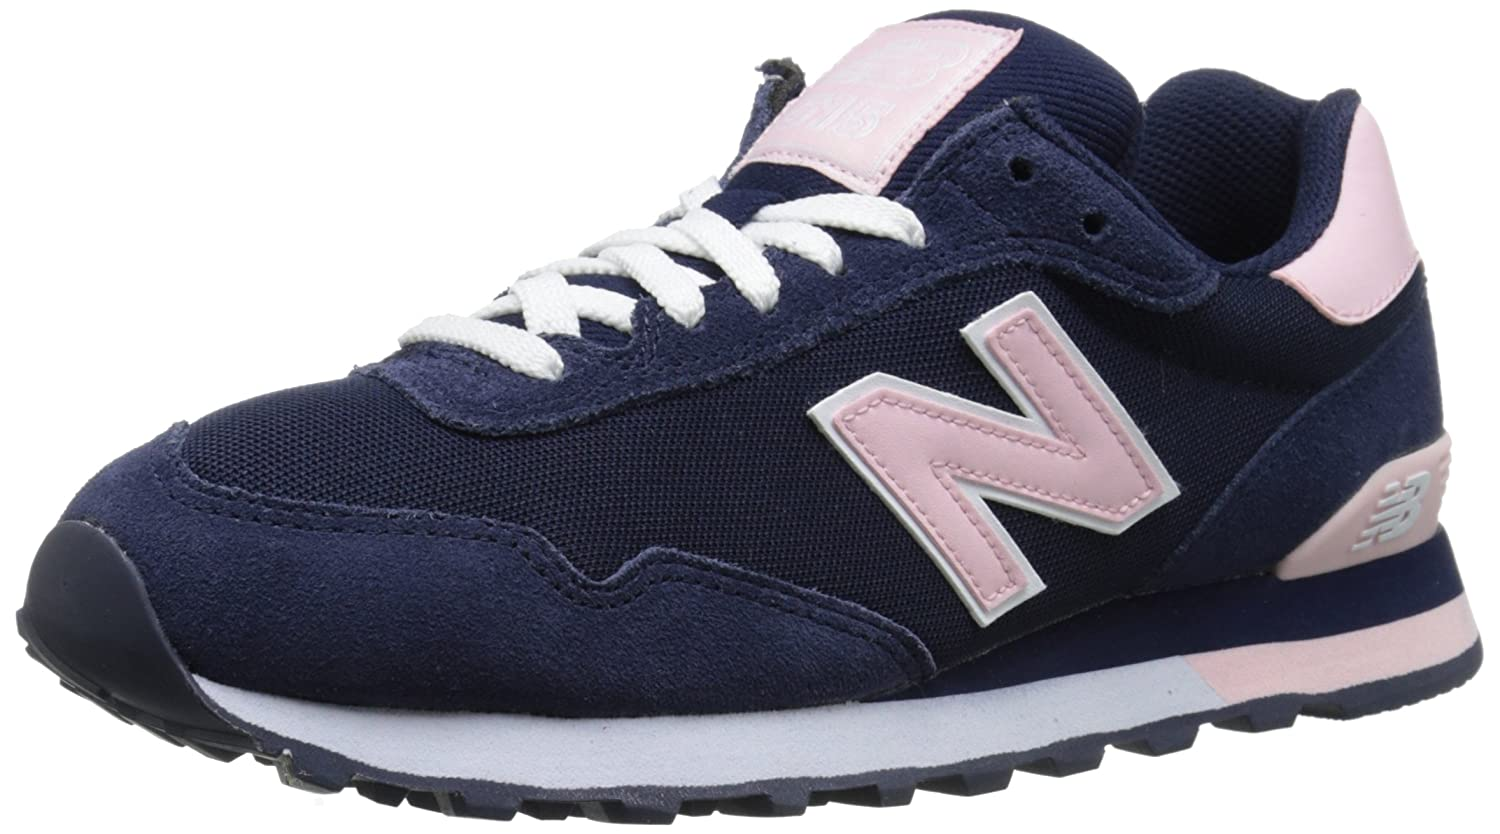 new balance shoes outdoor women birth say suits imdb